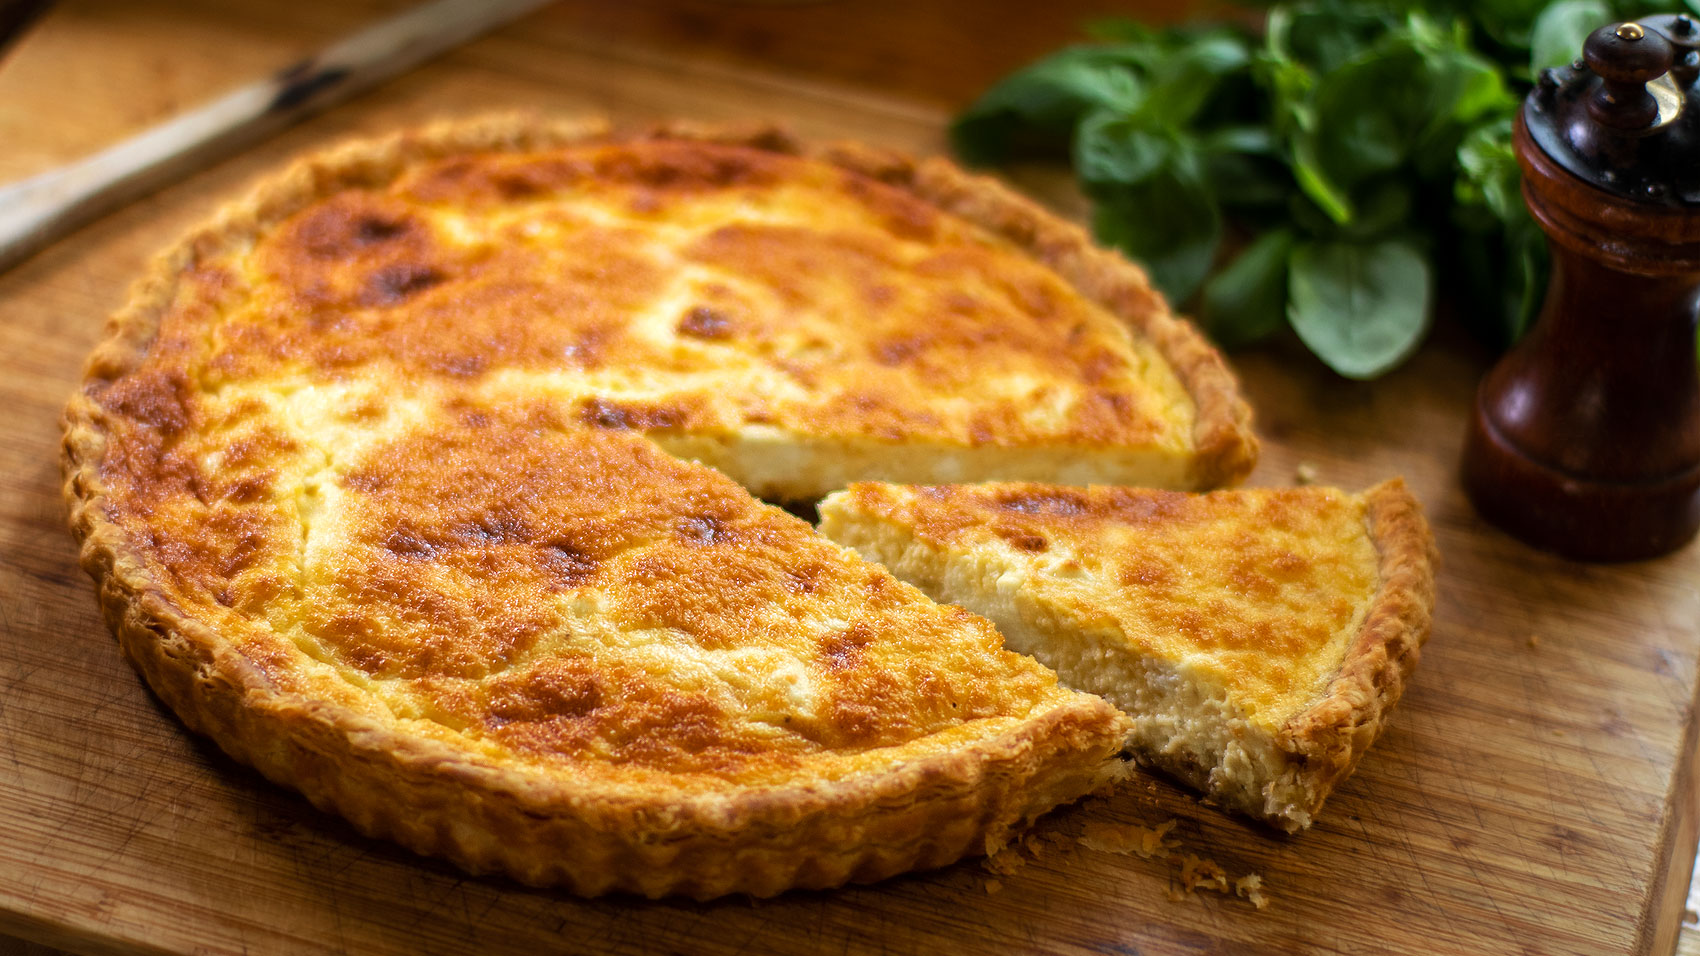 Rustic Goat Cheese Quiche Easy Meals With Video Recipes By Chef Joel Mielle Recipe30